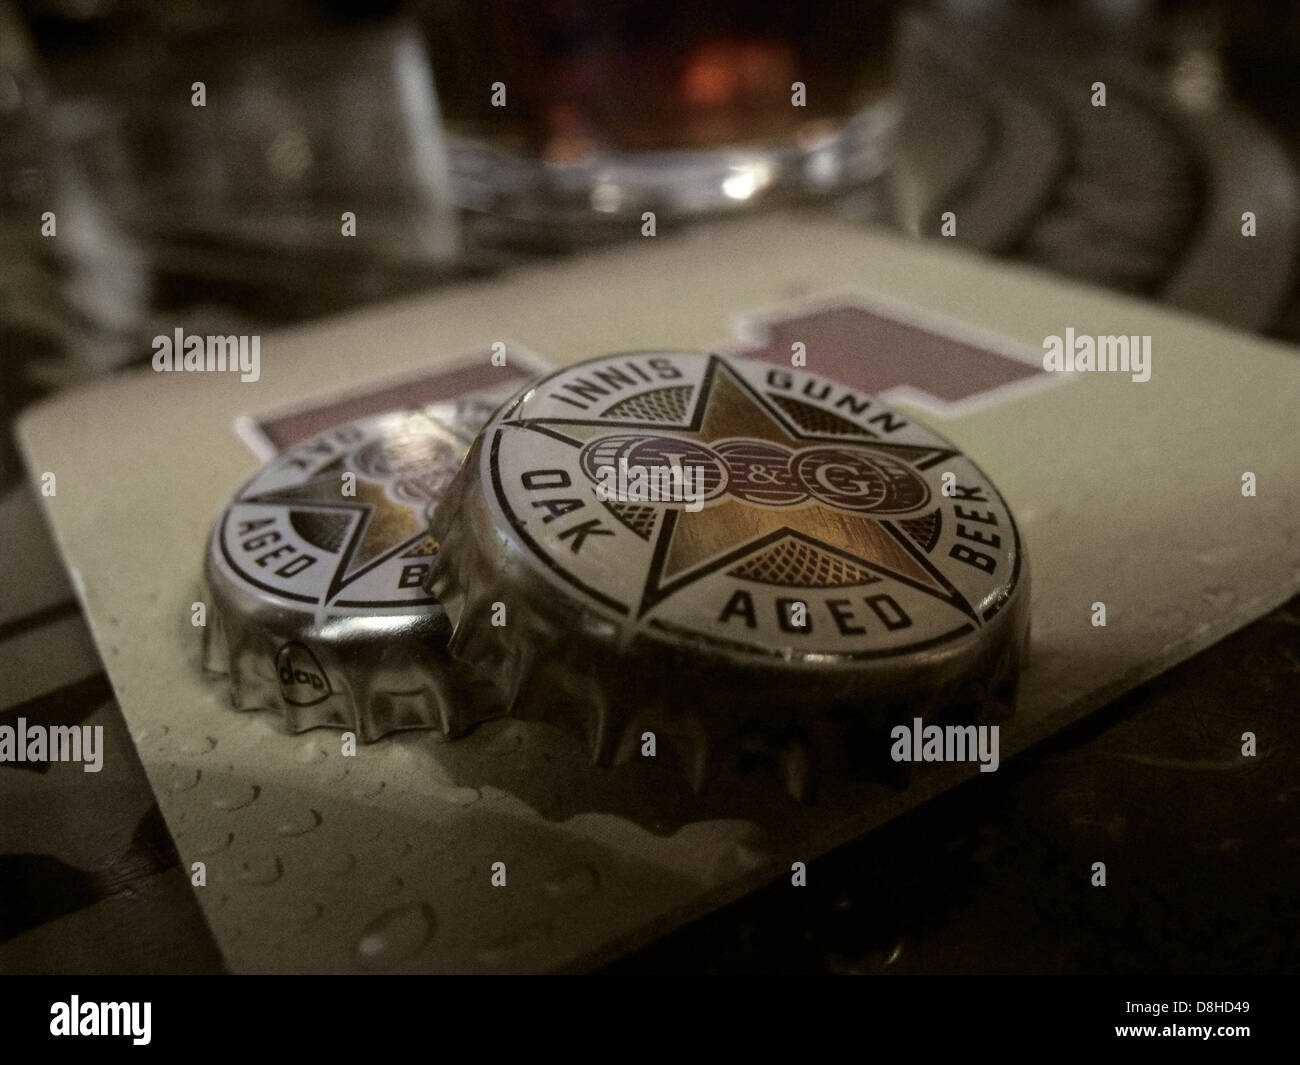 on,beermat,in,a,pub,Scottish,Scots,Scotland,mat,scene,CAMRA,public,house,bar,pure,enjoyment,alcohol,alcoholic,focus,DOF,depth,of,field,bottle,cool,bottled,drink,drinks,drinking,minimum,price,pricing,prices,unit,of,units,not,introduce,block,plans,Scotlands,supermarket,industry,legal,gotonysmith,EC,legal,opinions,opinion,restrict,Scottish,Parliament,in,May,2012,Scotch,Whisky,Association,SWA,and,two,other,trade,bodies,spiritsEUROPE,and,the,Comité,Européen,des,Entreprises,Vins,which,represent,European,spirits,and,wine,producers,Buy Pictures of,Buy Images Of